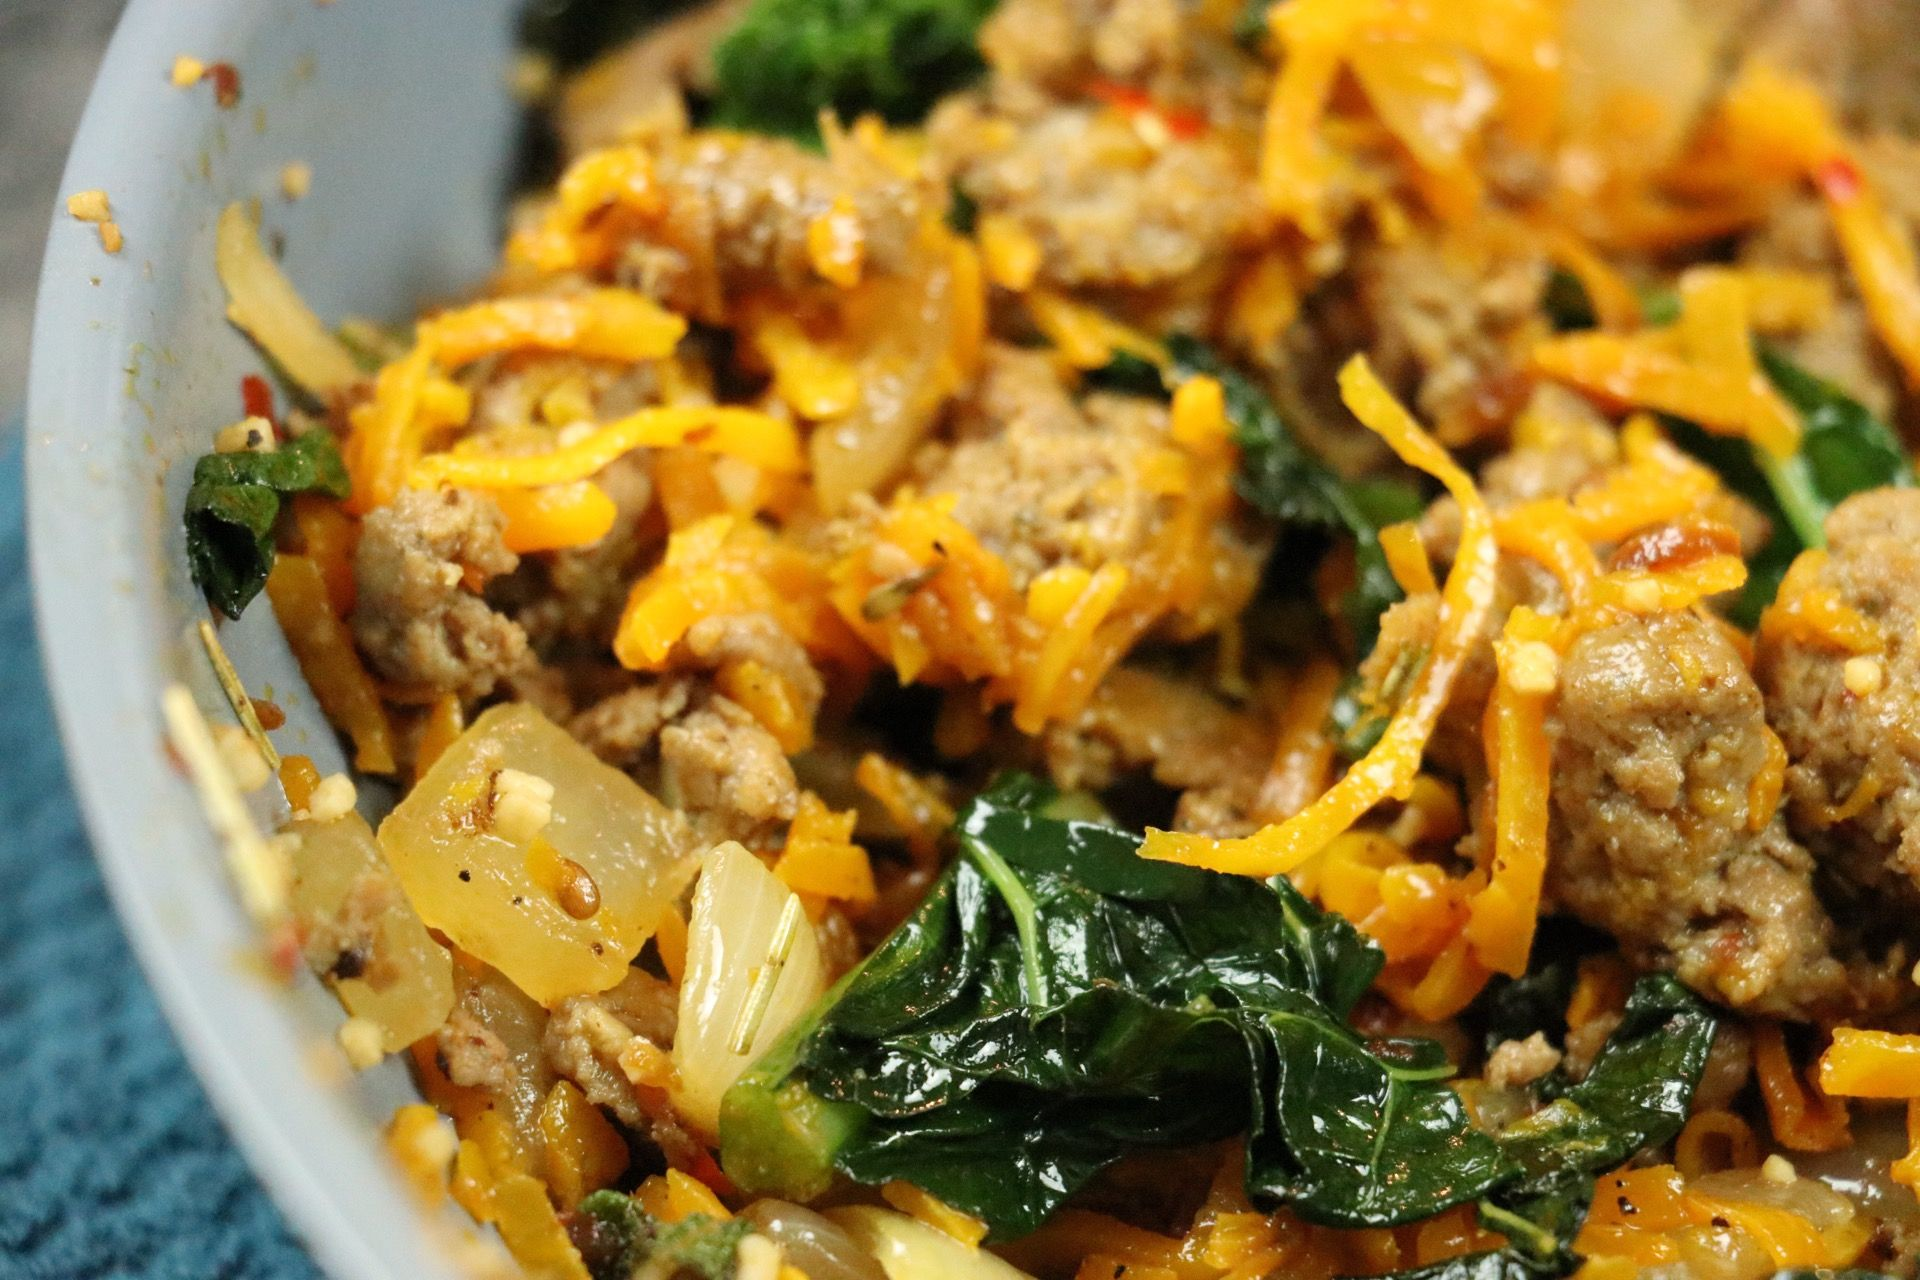 Spiralized Butternut Squash With Kale & Sausage - Forkly